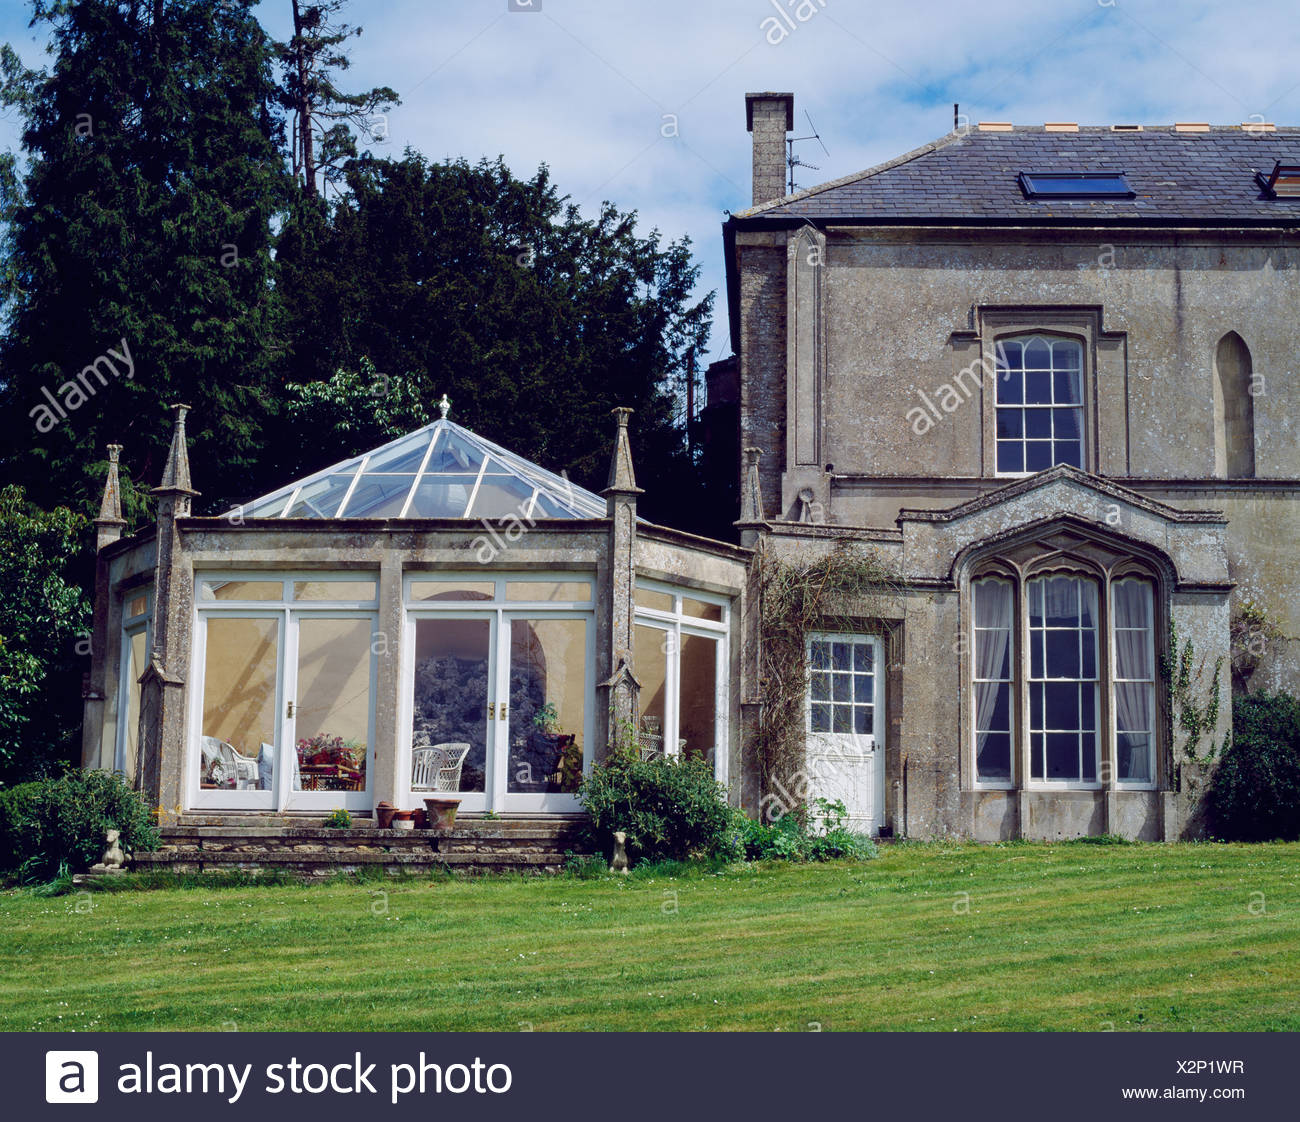 Victorian Gothic House Stock Photos & Victorian Gothic House Stock ...